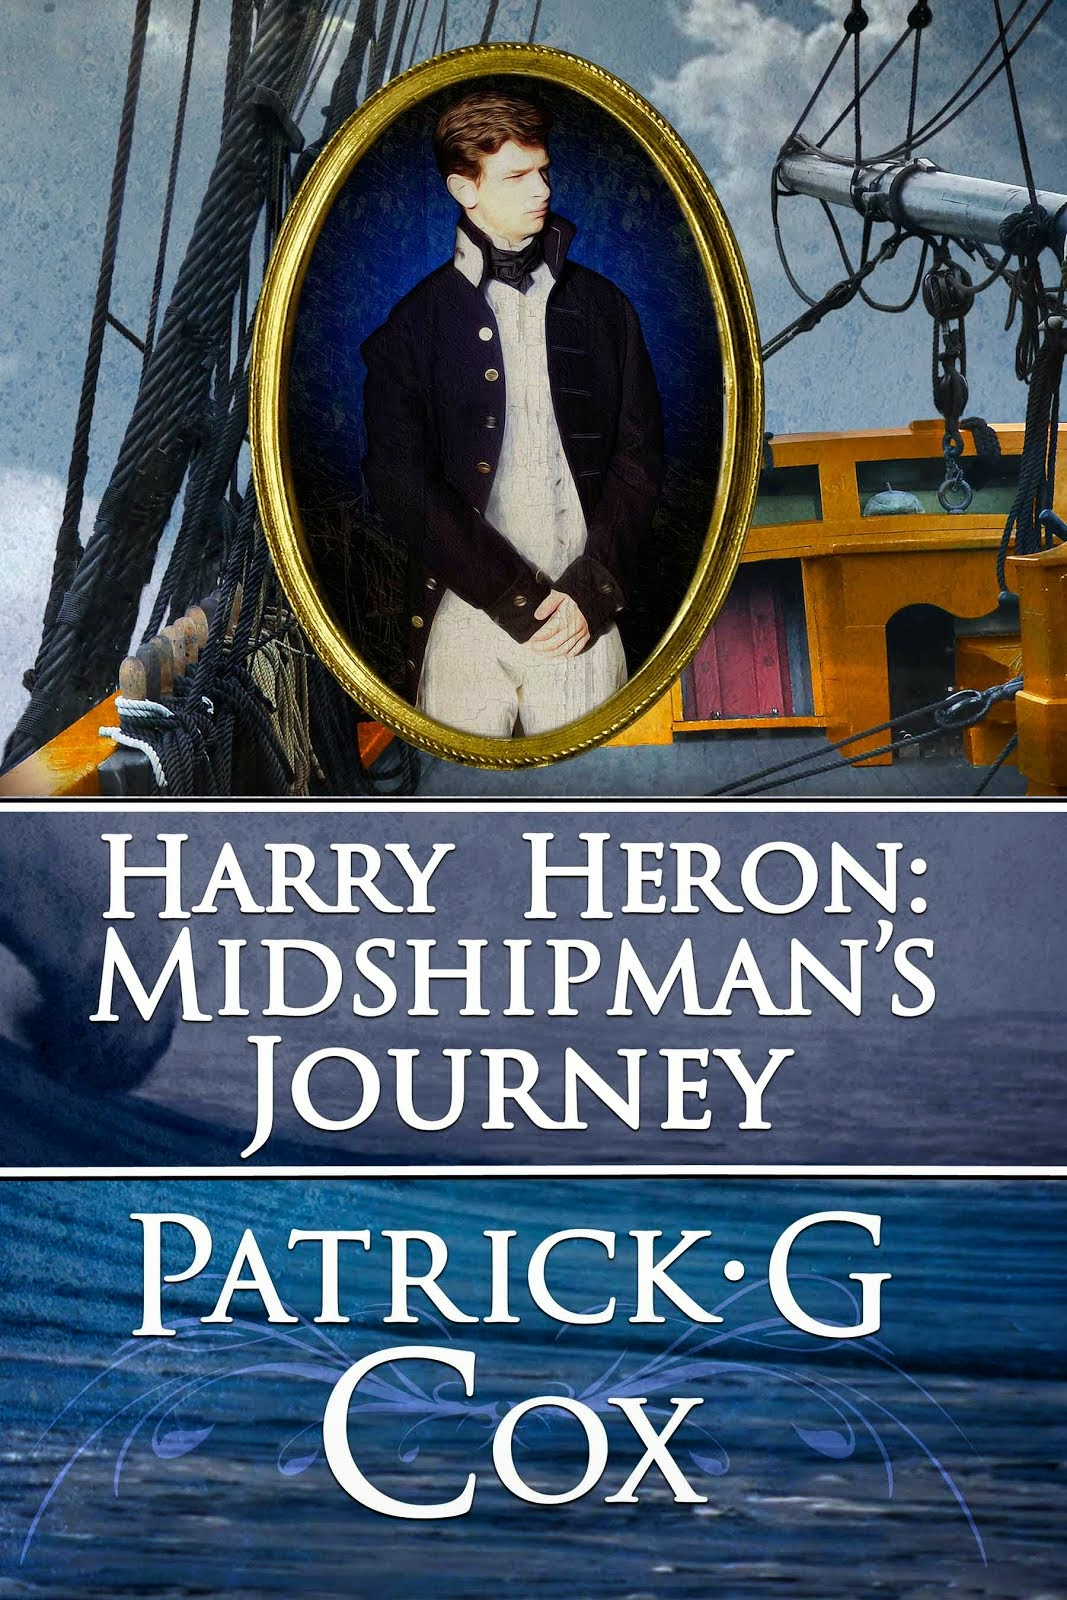 Harry Heron; Midshipman's Journey